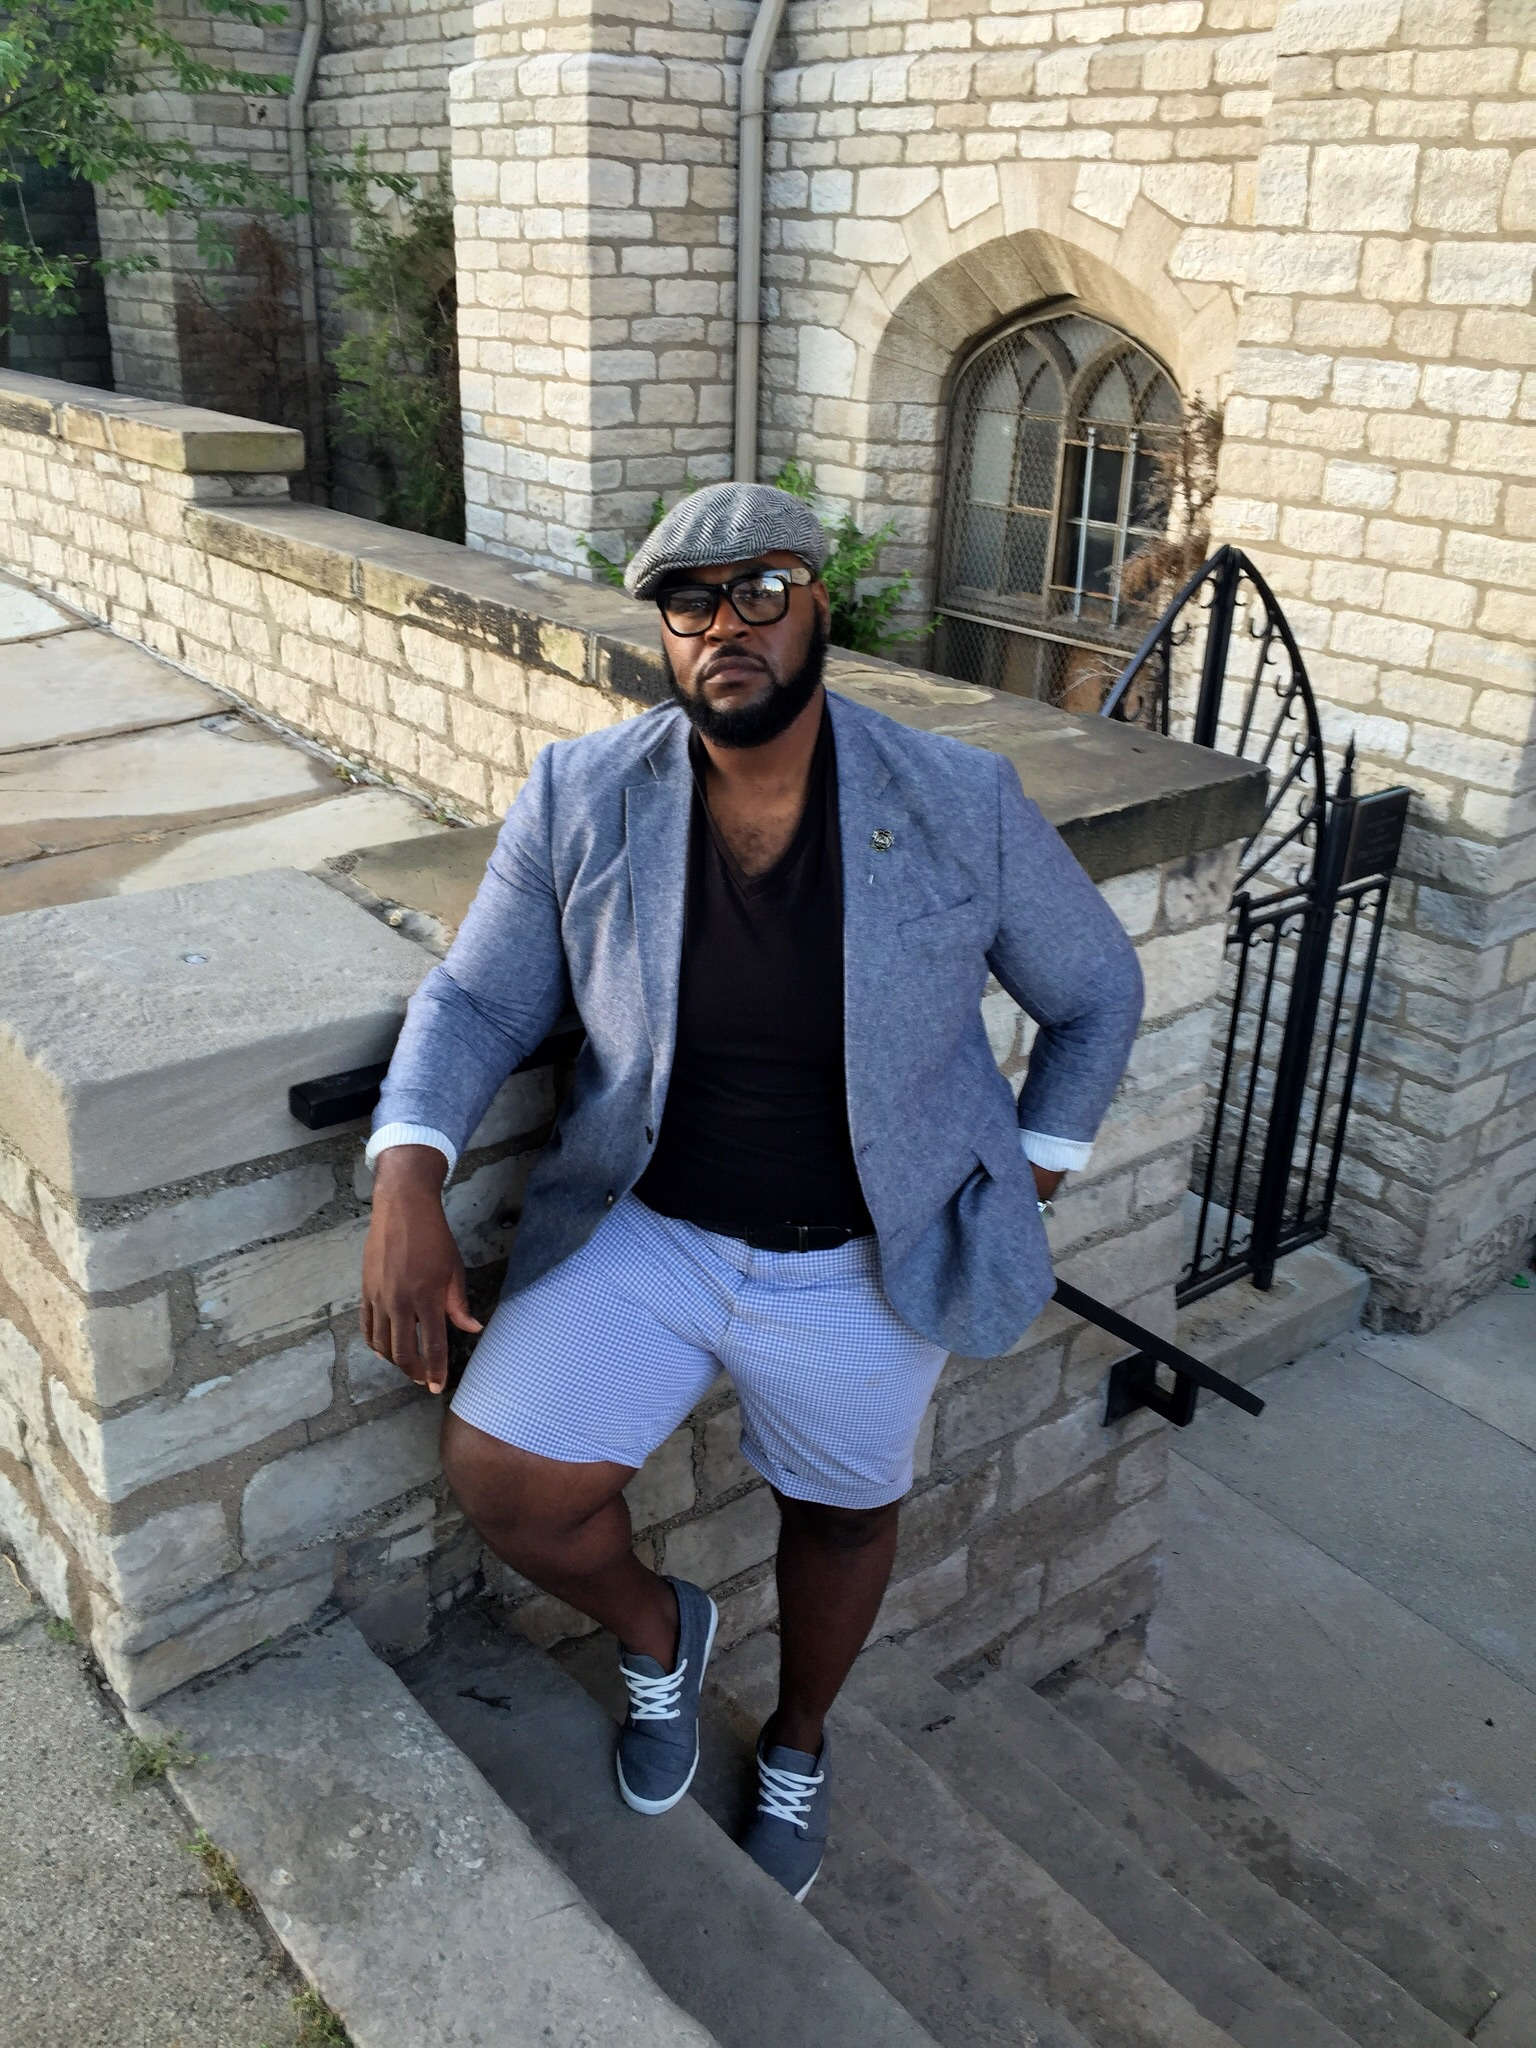 The Look Details:  Blazer: Stafford  here   V-neck T-shirt: Old Navy  here    Shorts: ByRalph Lauren from Marshalls: Price Option 1  Similar  & Price Option 2  Similar   Shoes: Old Navy  here       *my accessories hat, glasses, & watchare discount retailer finds*